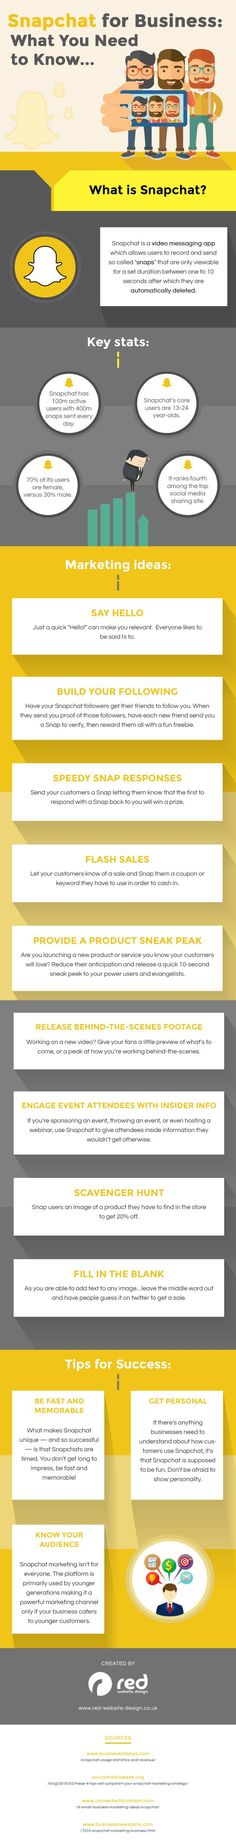 Snapchat Infographic. Although I can't imagine how irritated young people are going to be when their snapchats get flooded with spam/advertising